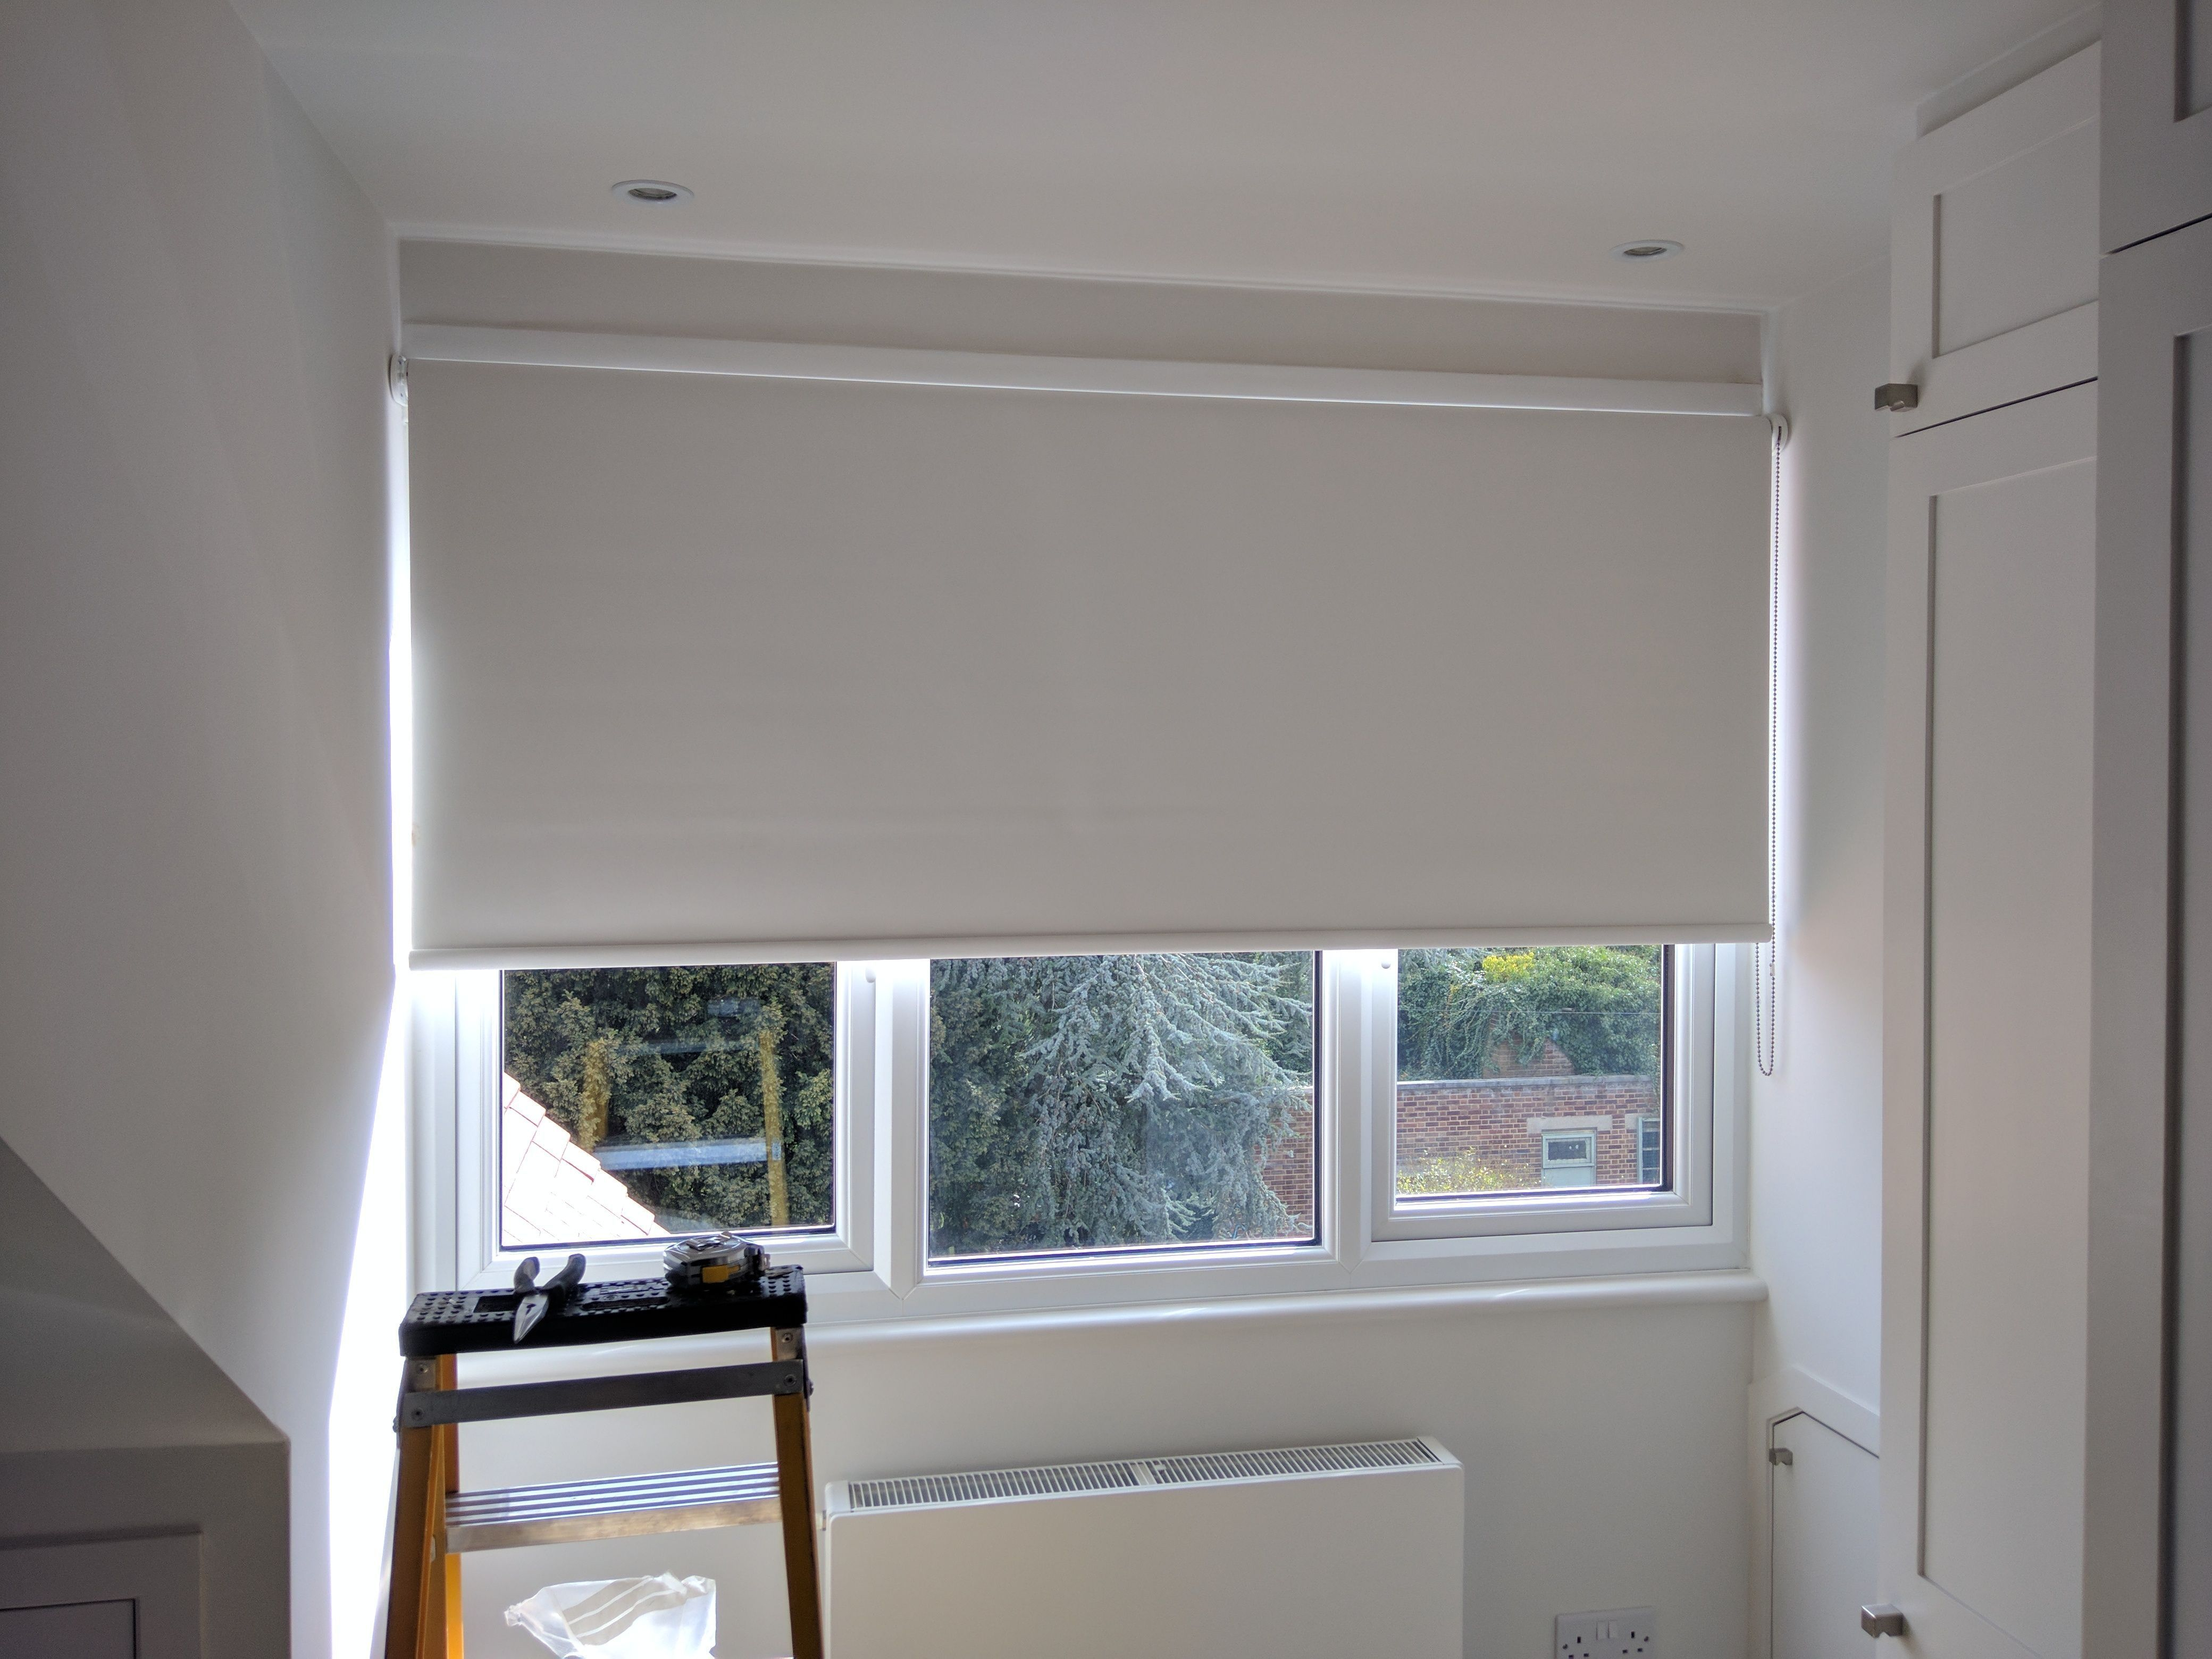 Window coverings shutters  blackout roller blind in polar white colour fitted to bedroom window